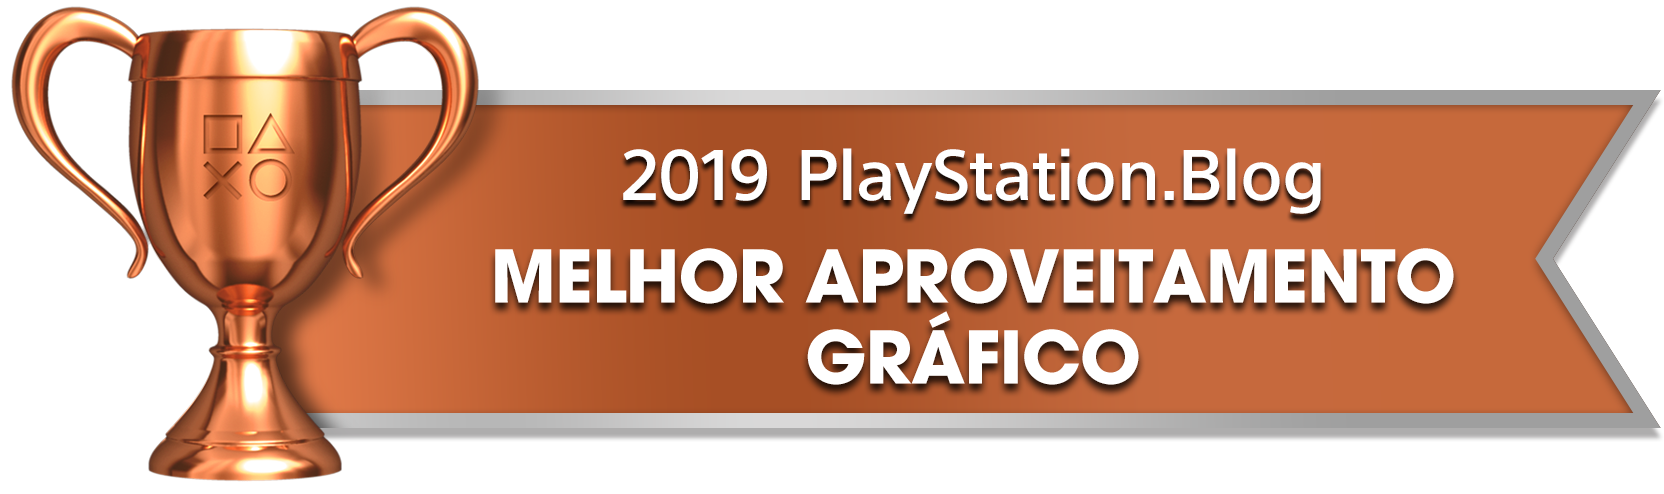 PS Blog Game of the Year 2019 - Best Graphical Showcase - 4 - Bronze